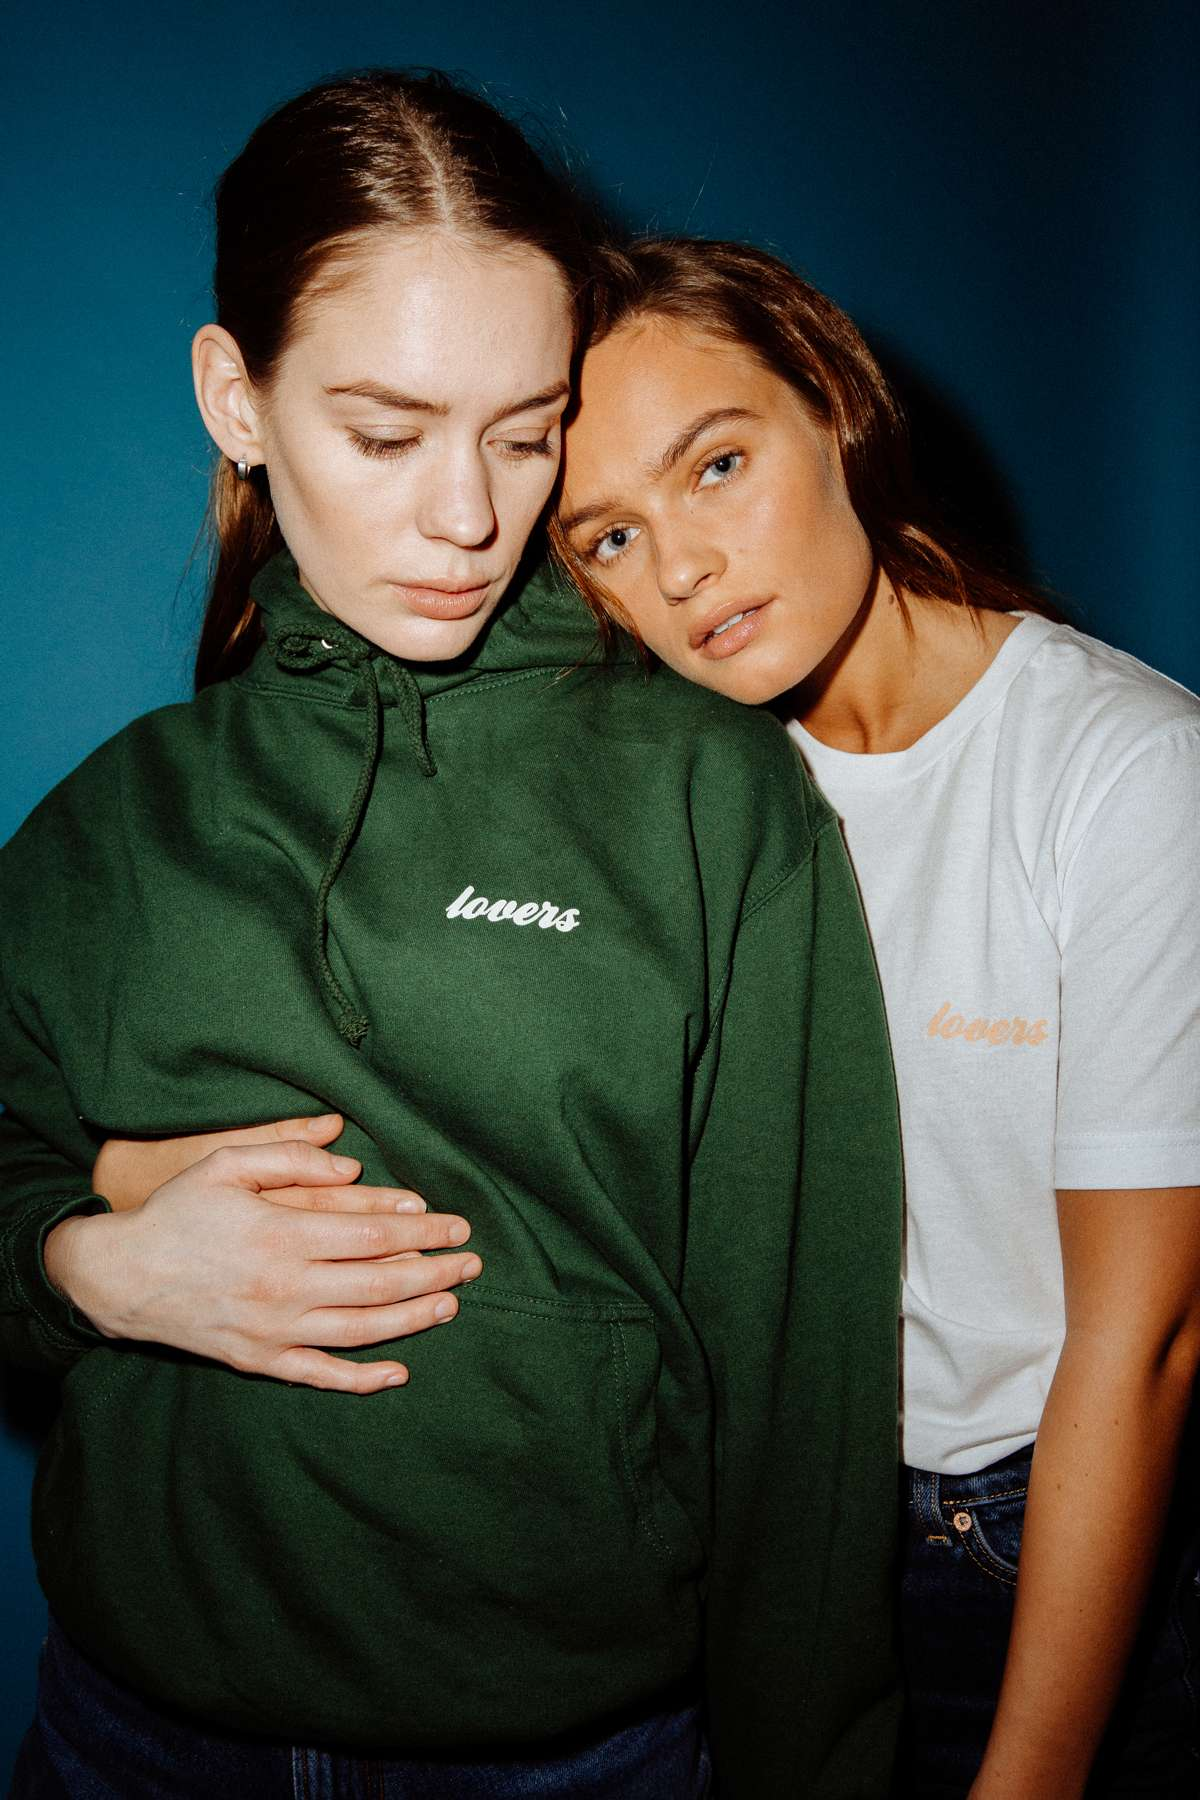 Lovers Hoodie - Green - Anna Of The North